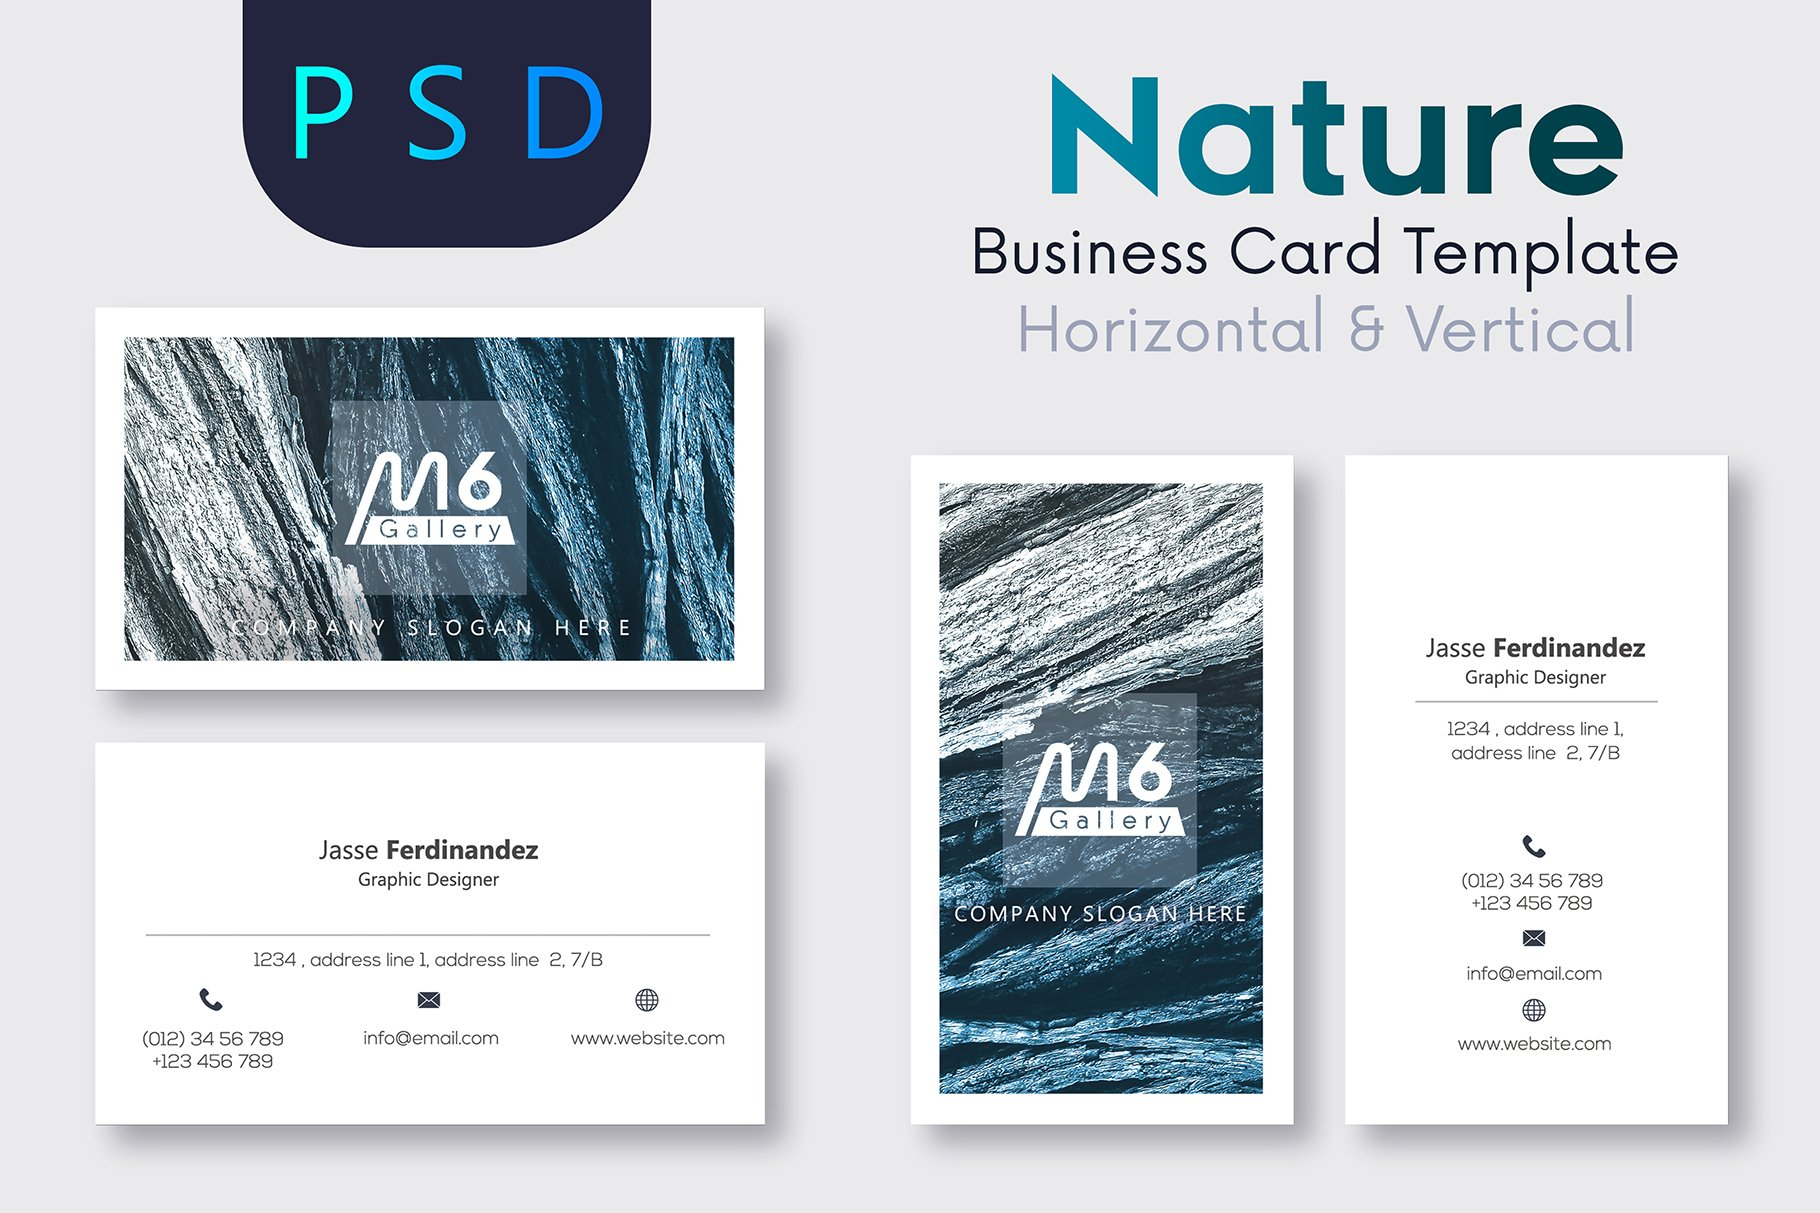 Nature business card template s26 business card templates nature business card template s26 business card templates creative market reheart Images